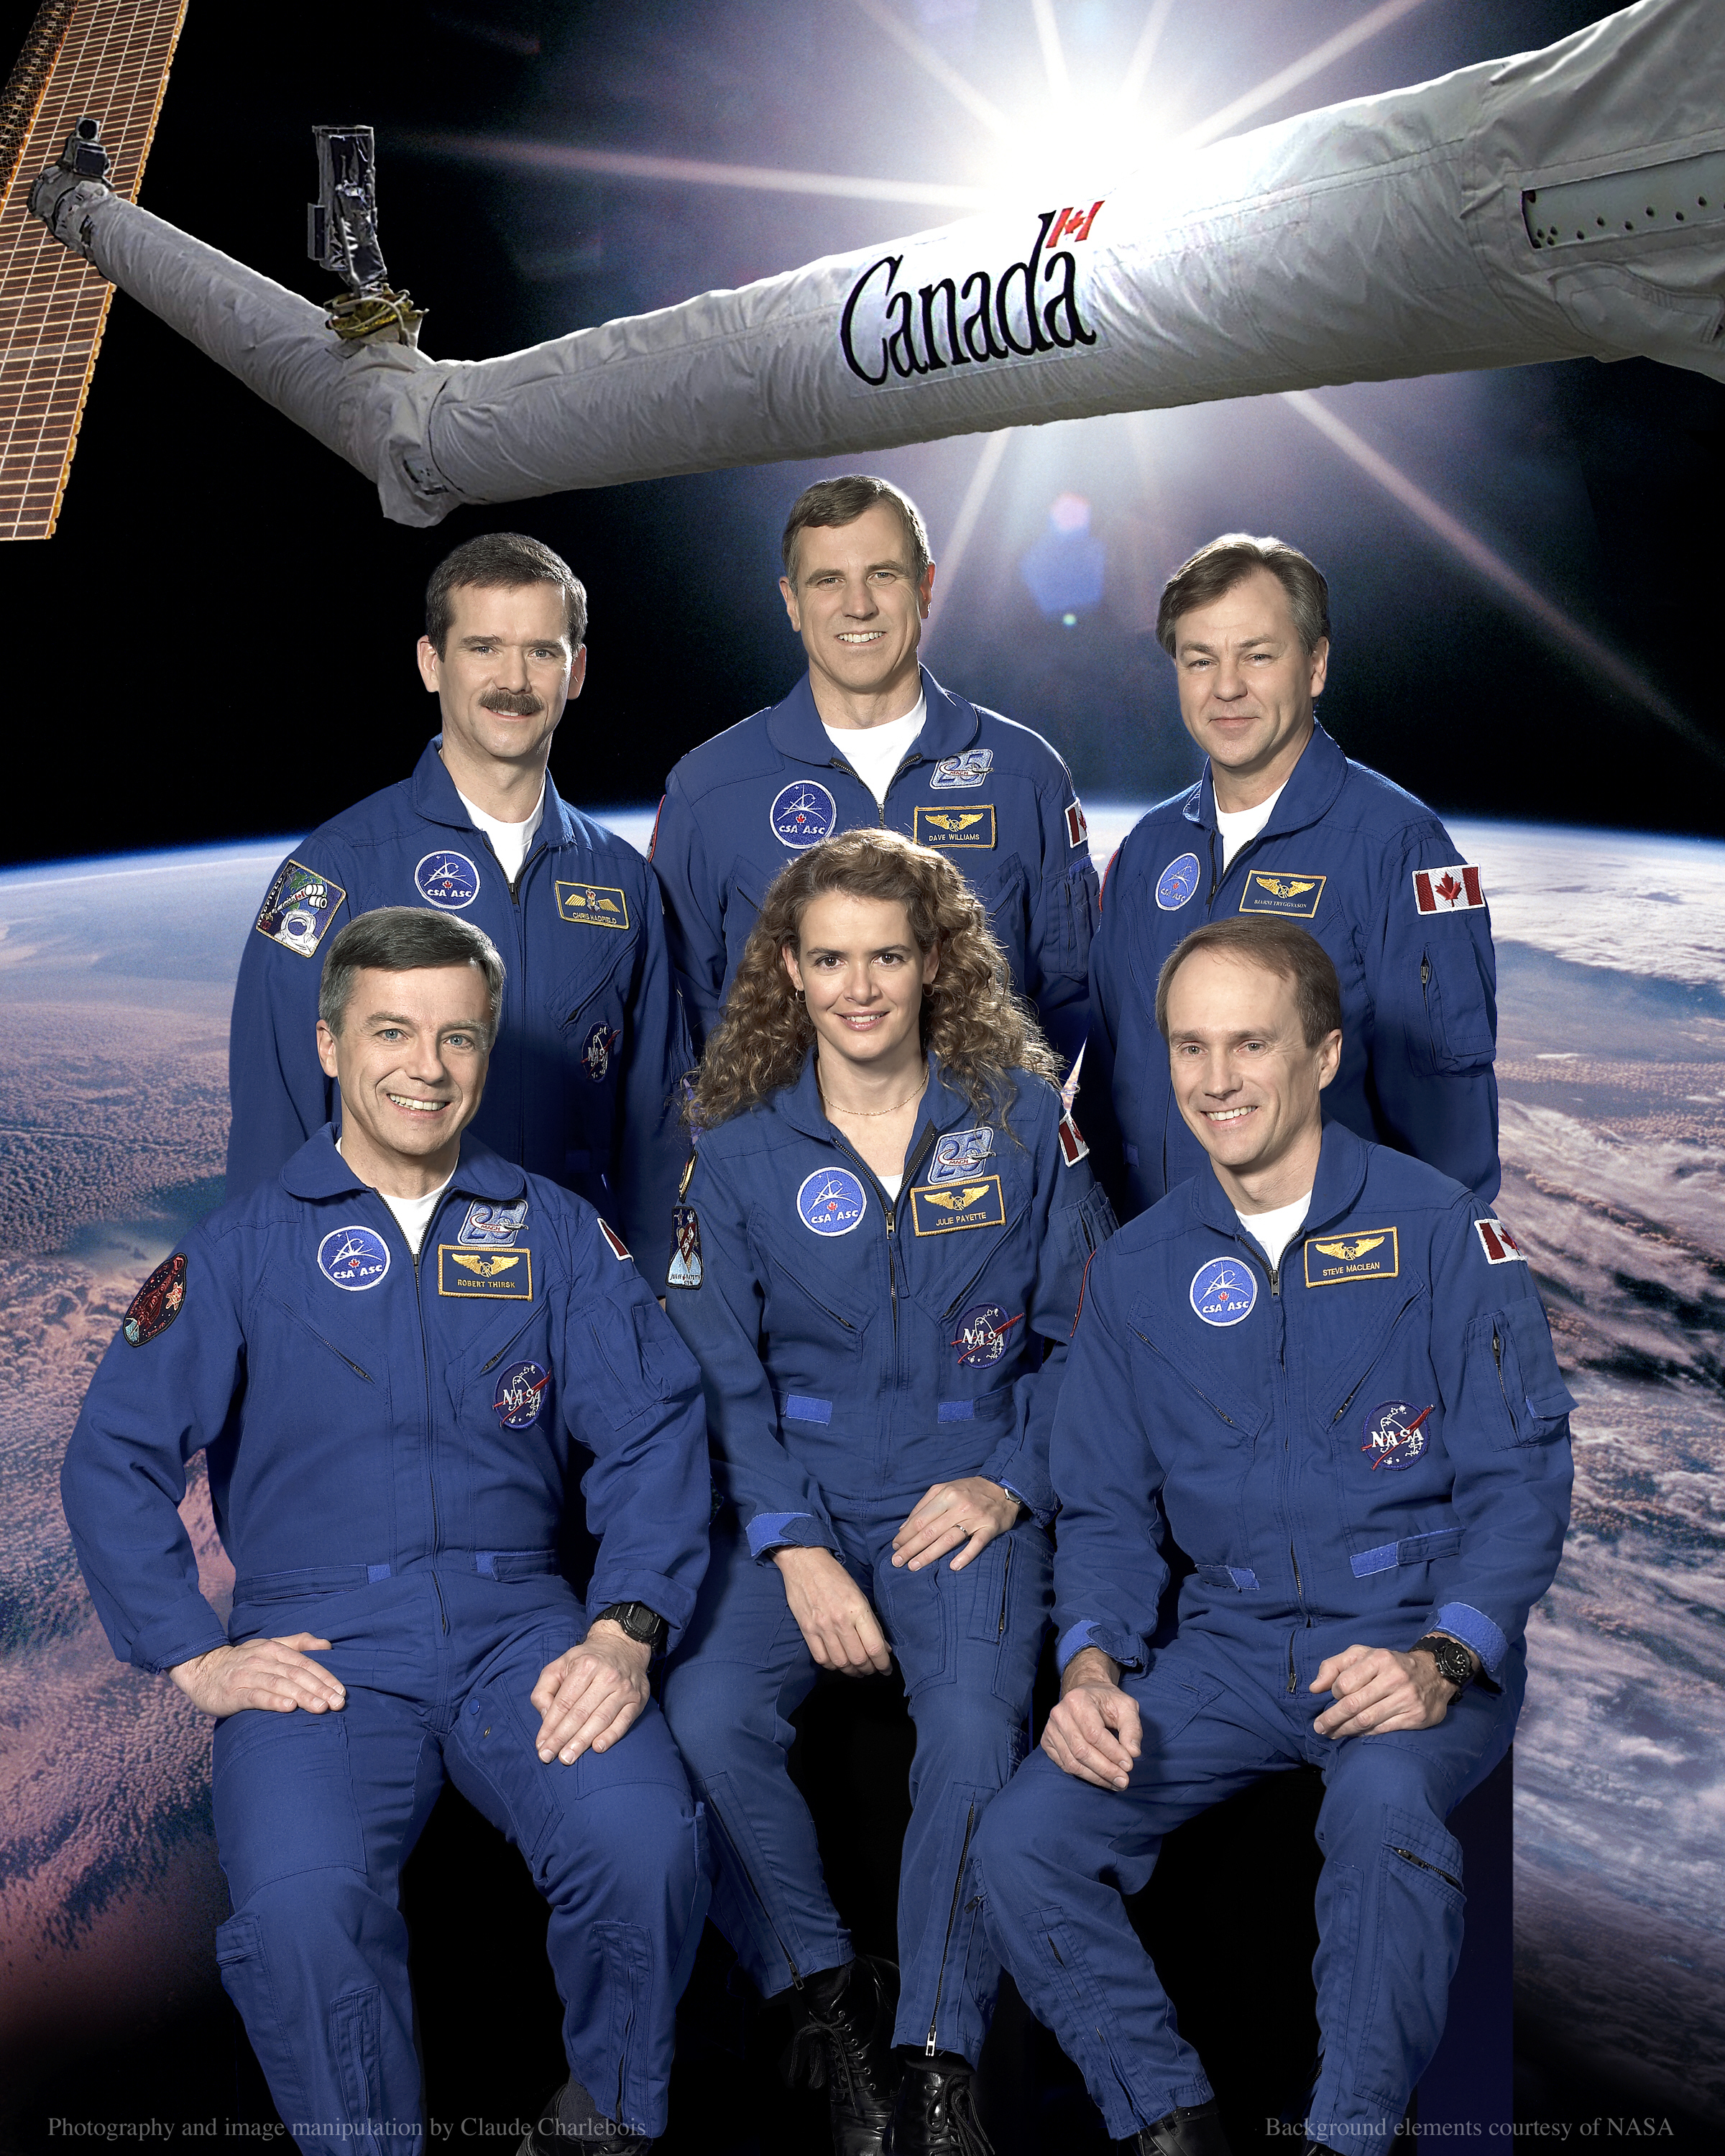 canadian space agency astronaut description - photo #22